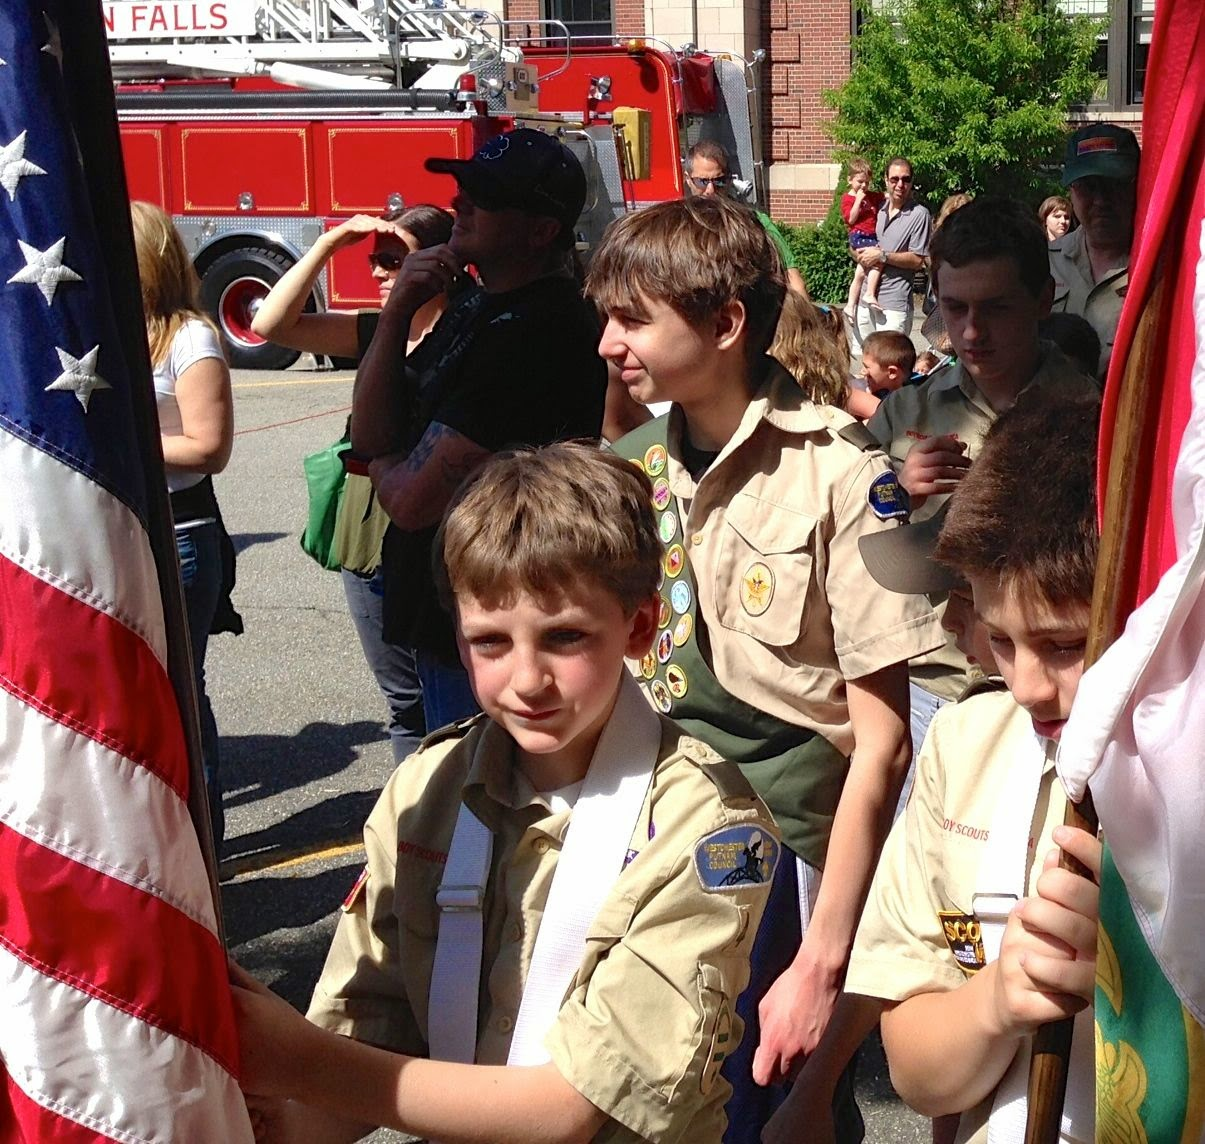 boy scouts in parade: simplelivingeating.com